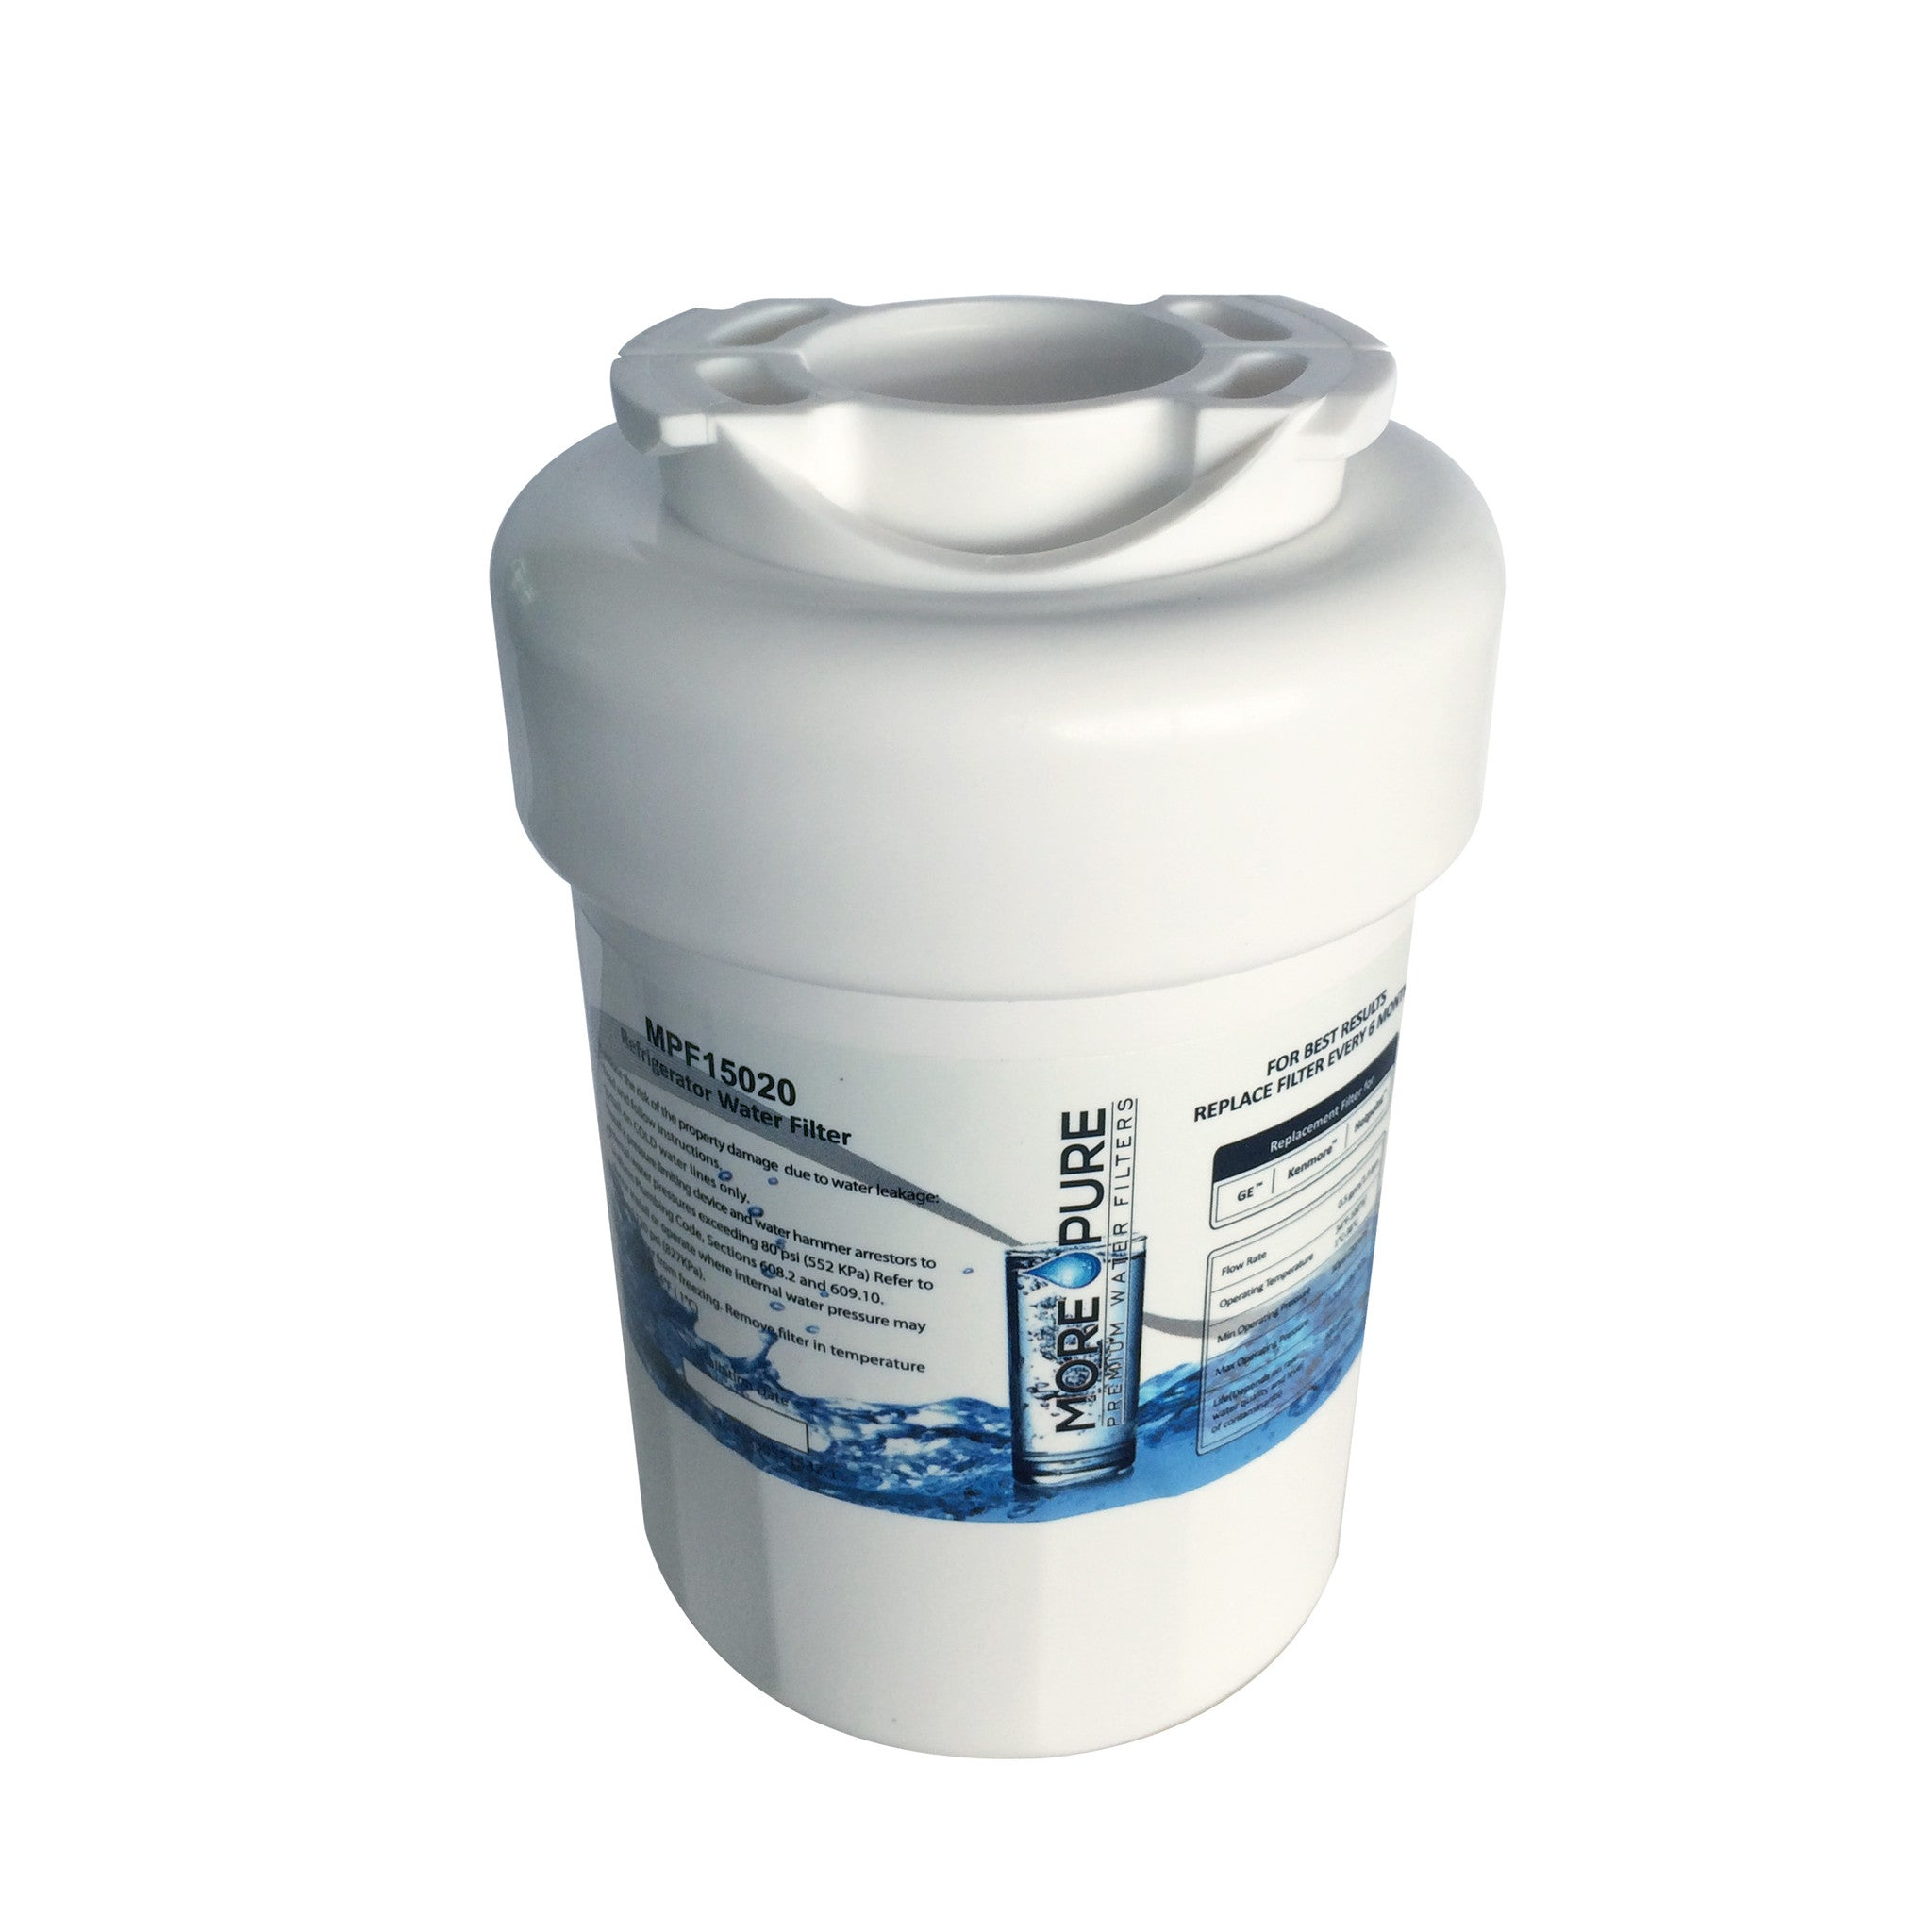 mpf15020 ge mwf compatible water filter